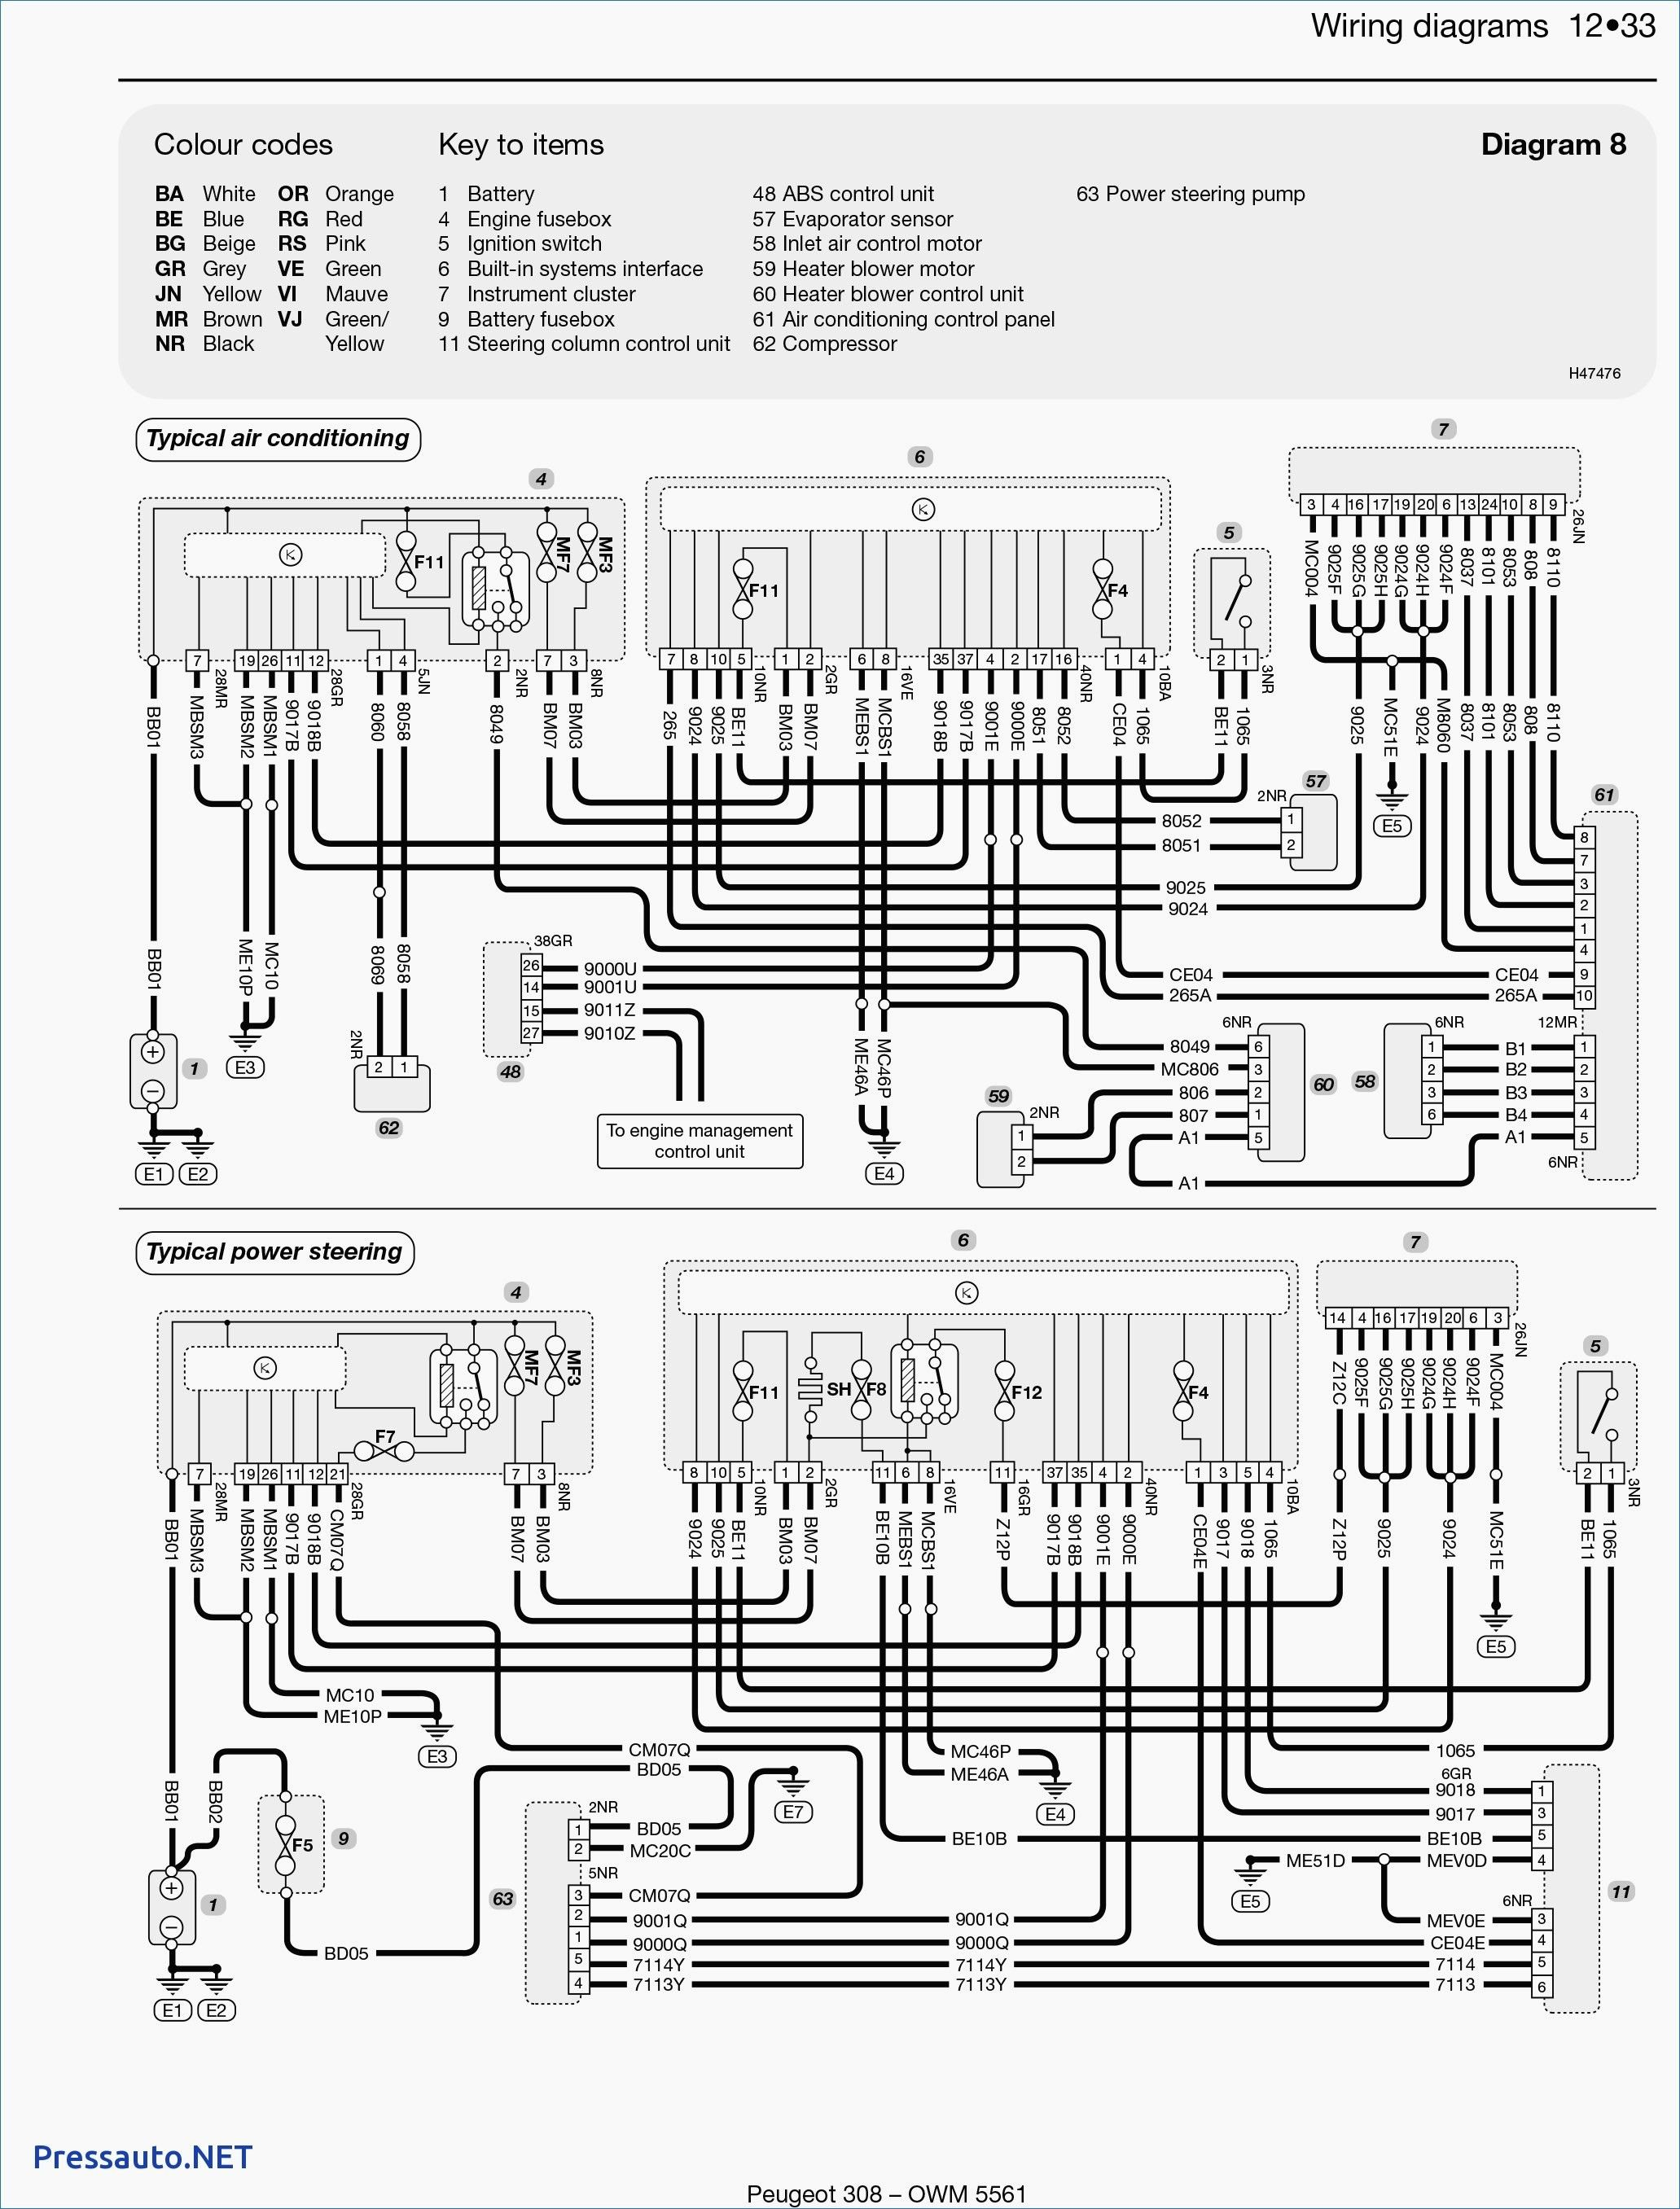 wiring diagram for peugeot 206 stereo best of fortable in [ 2063 x 2713 Pixel ]